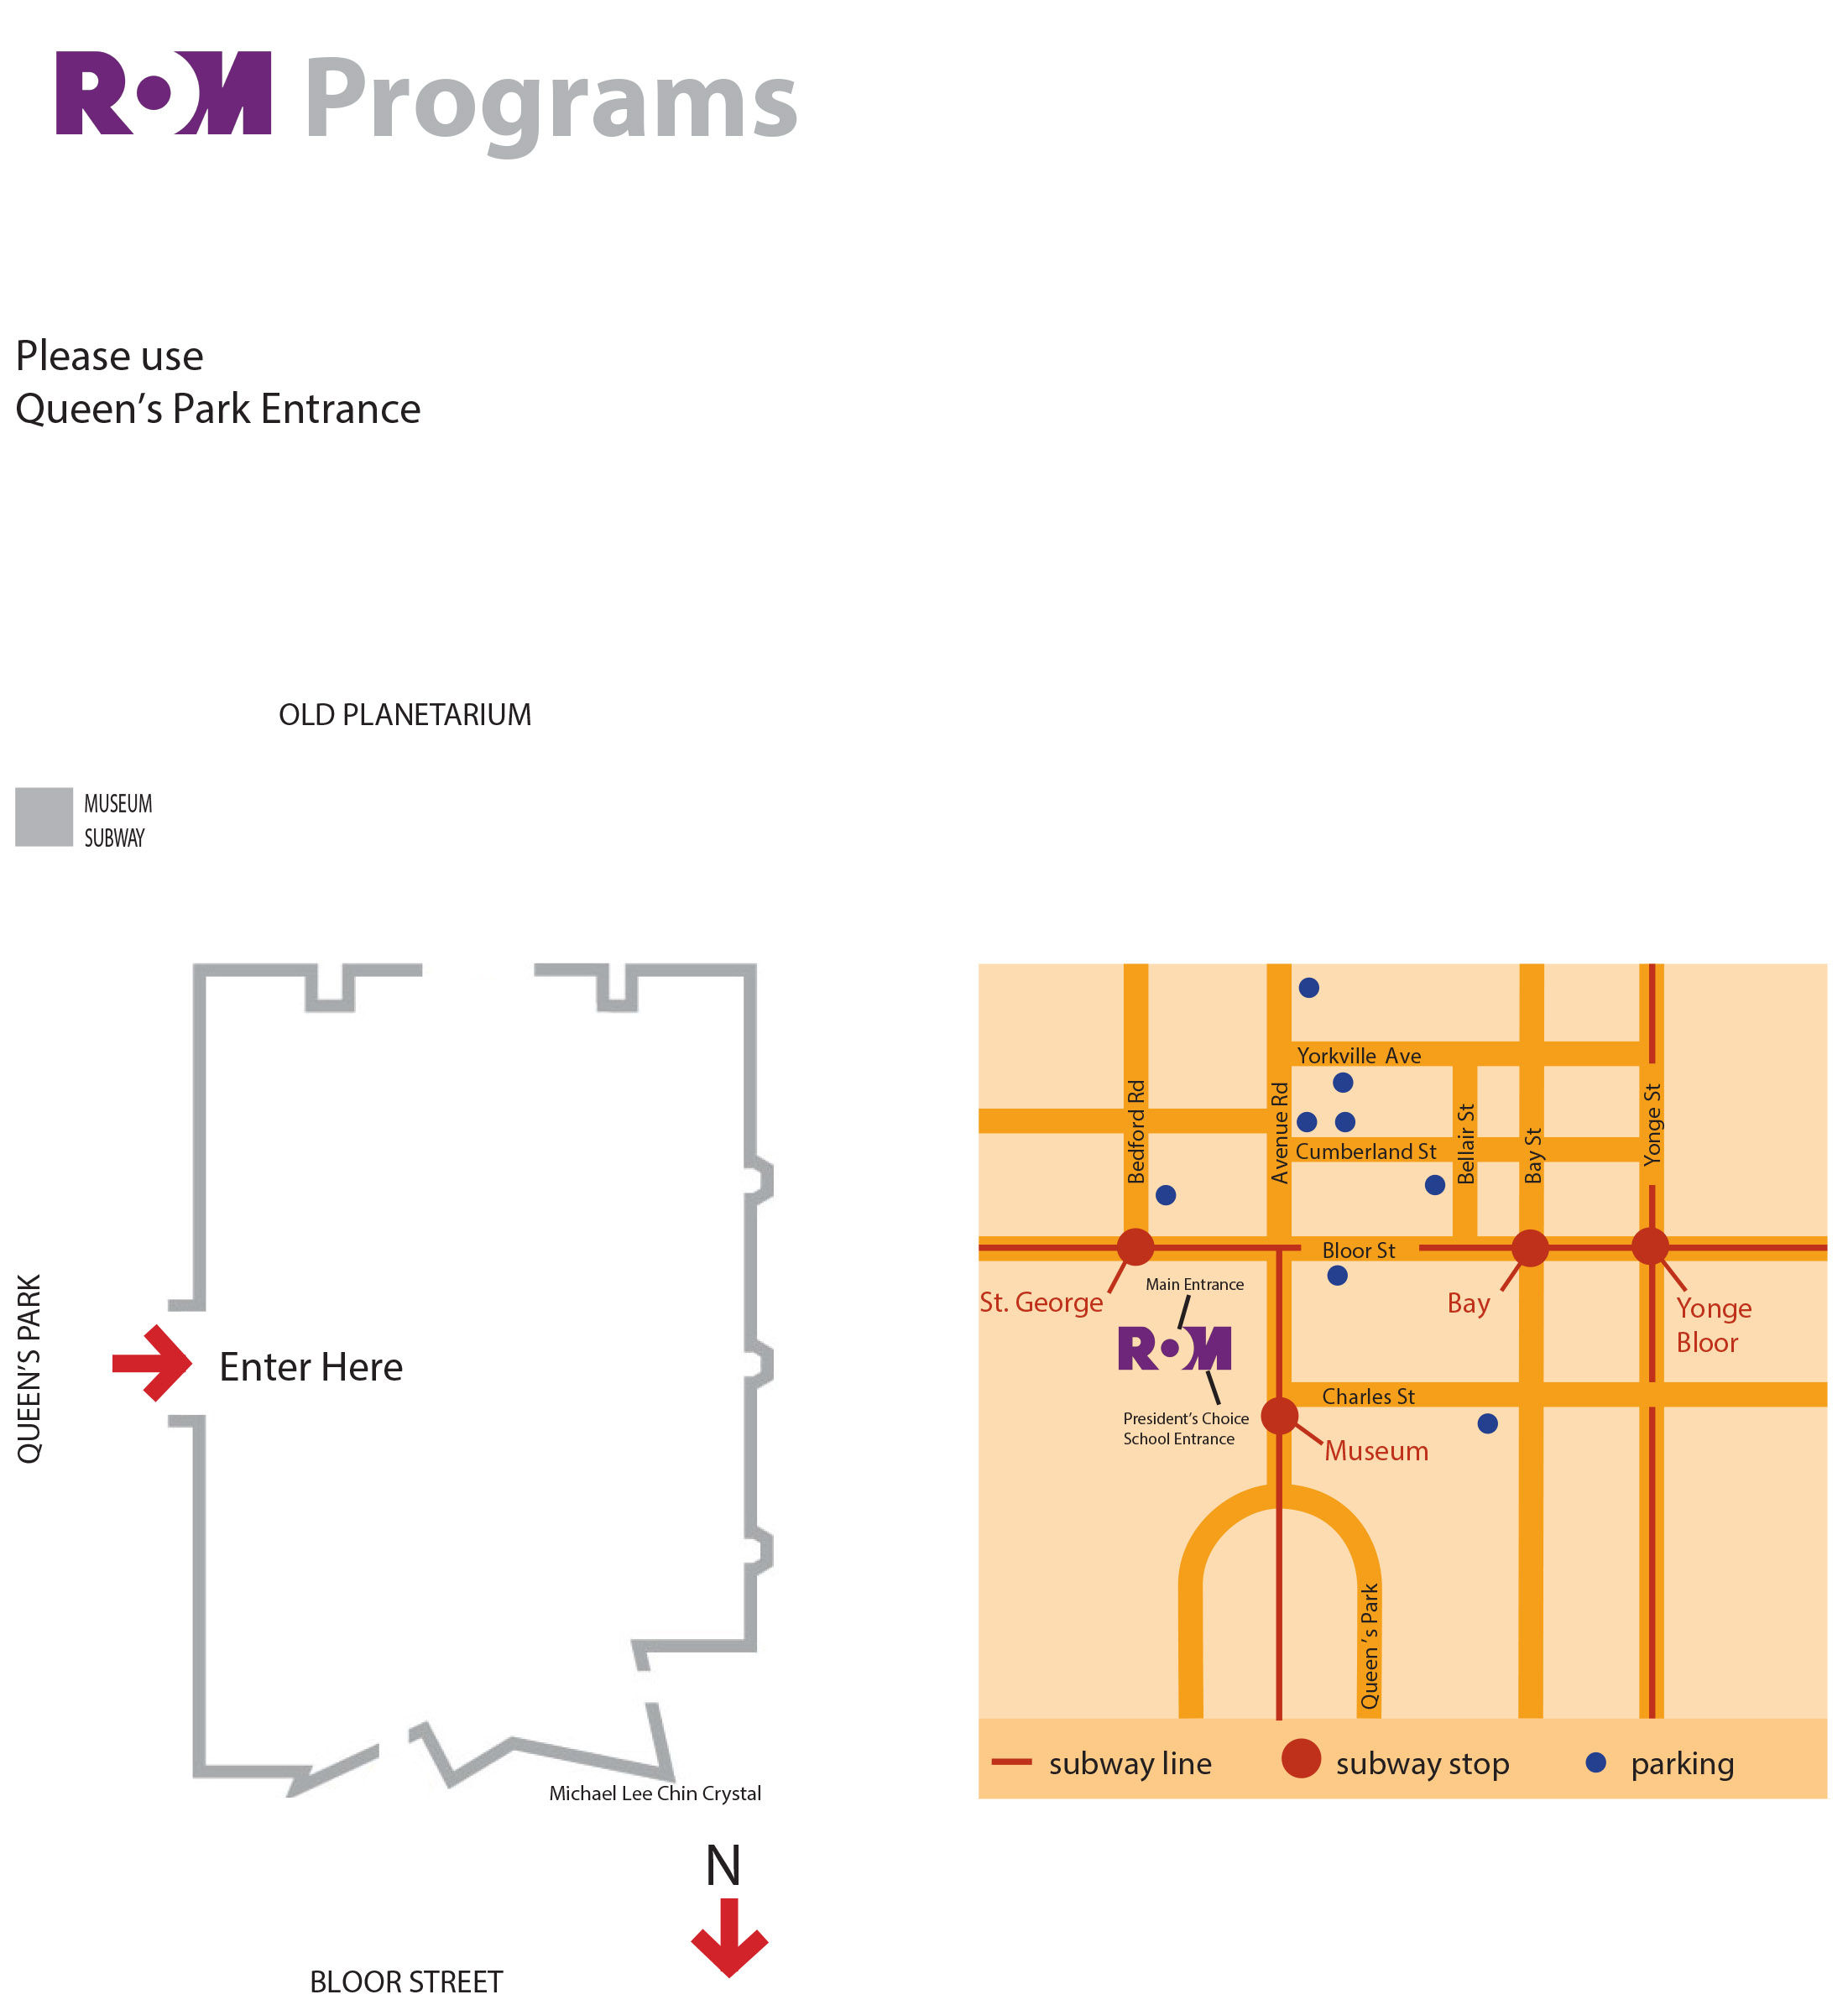 ROM Map: Street map and building layout with Queen's Park entrance.